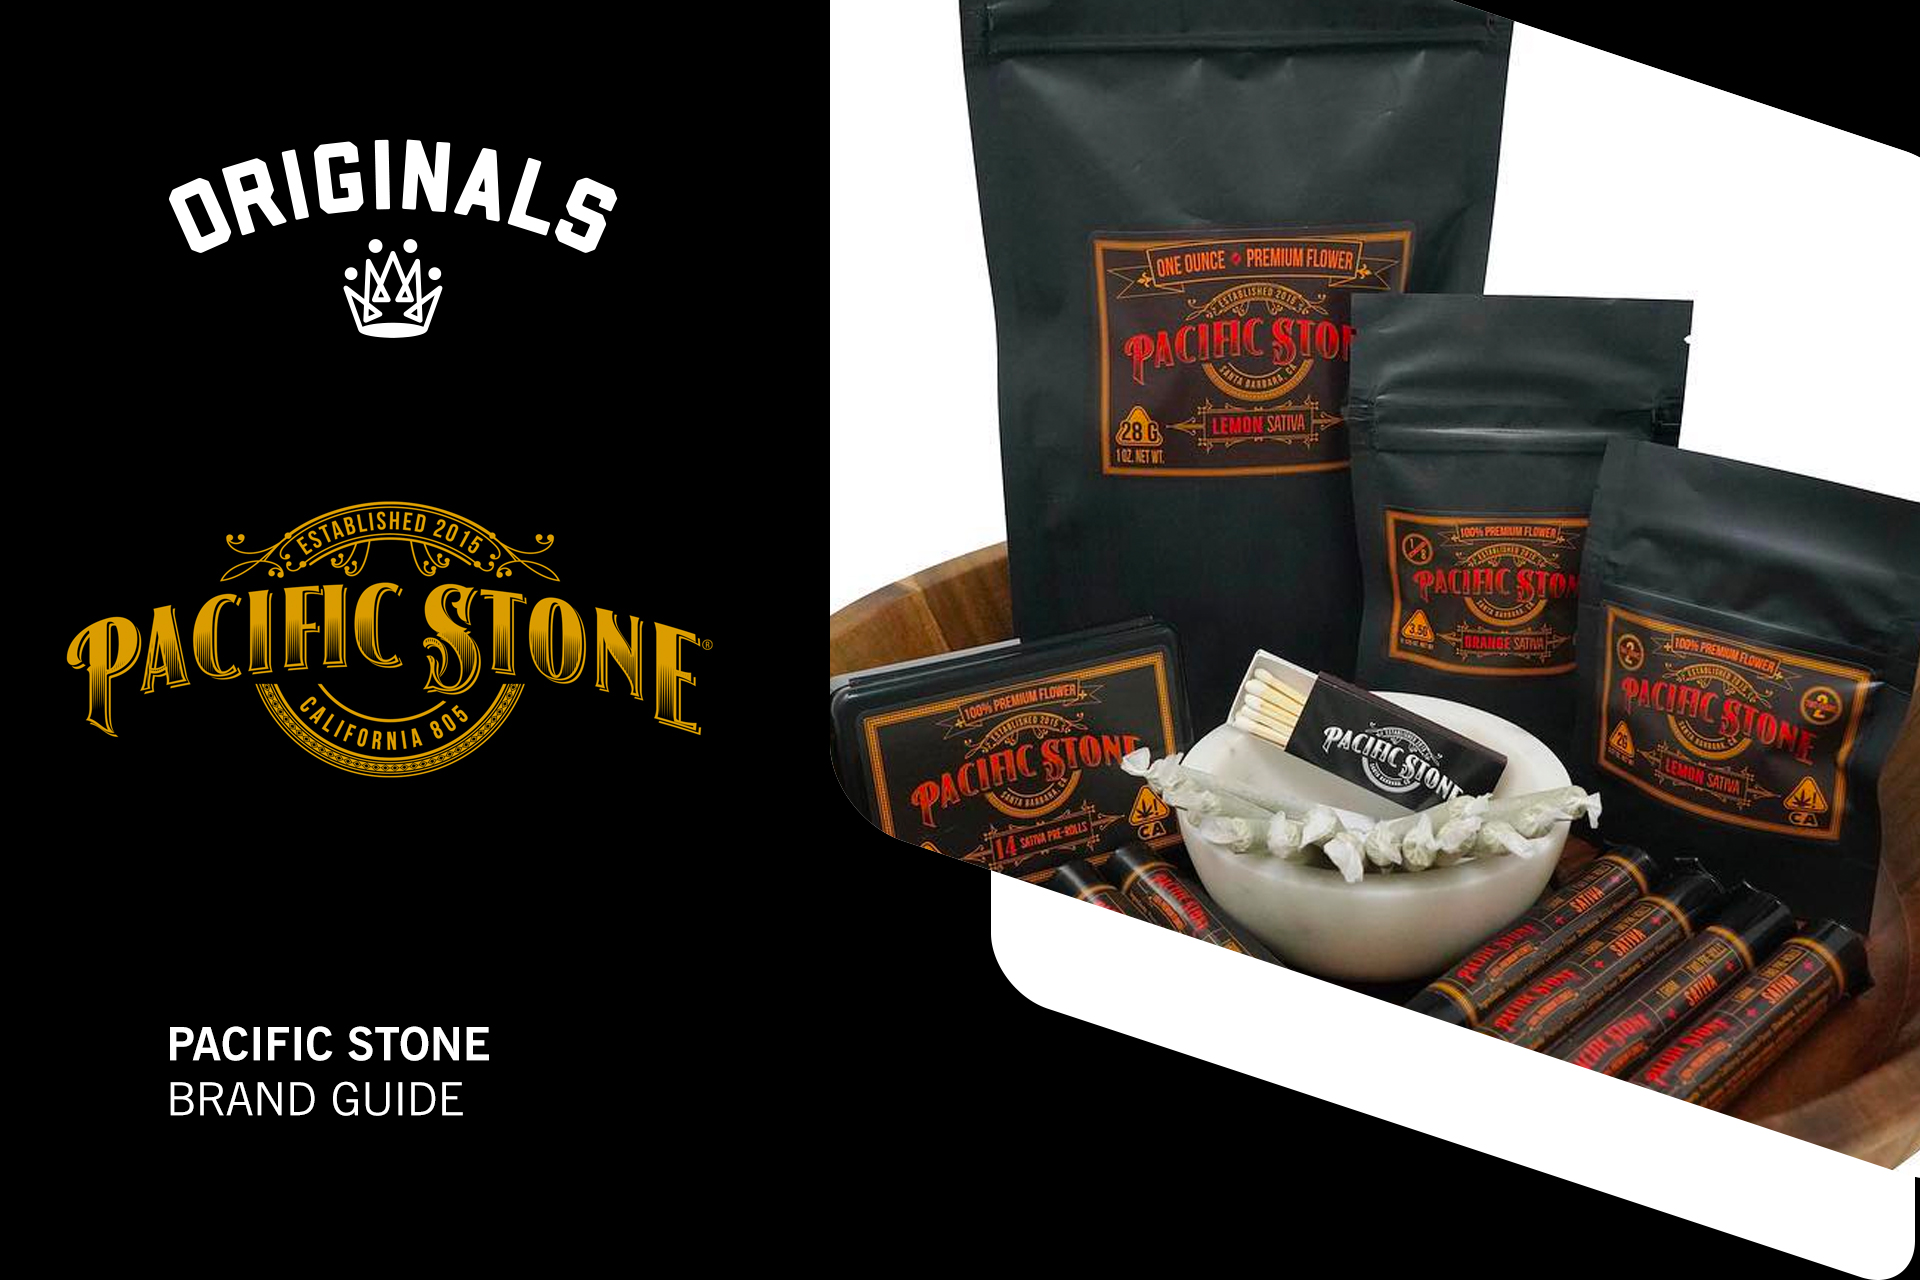 Pacific Stone Brand Guide: Powerful Cost-Effective Cannabis Flower At Originals Factory & Weed Shop